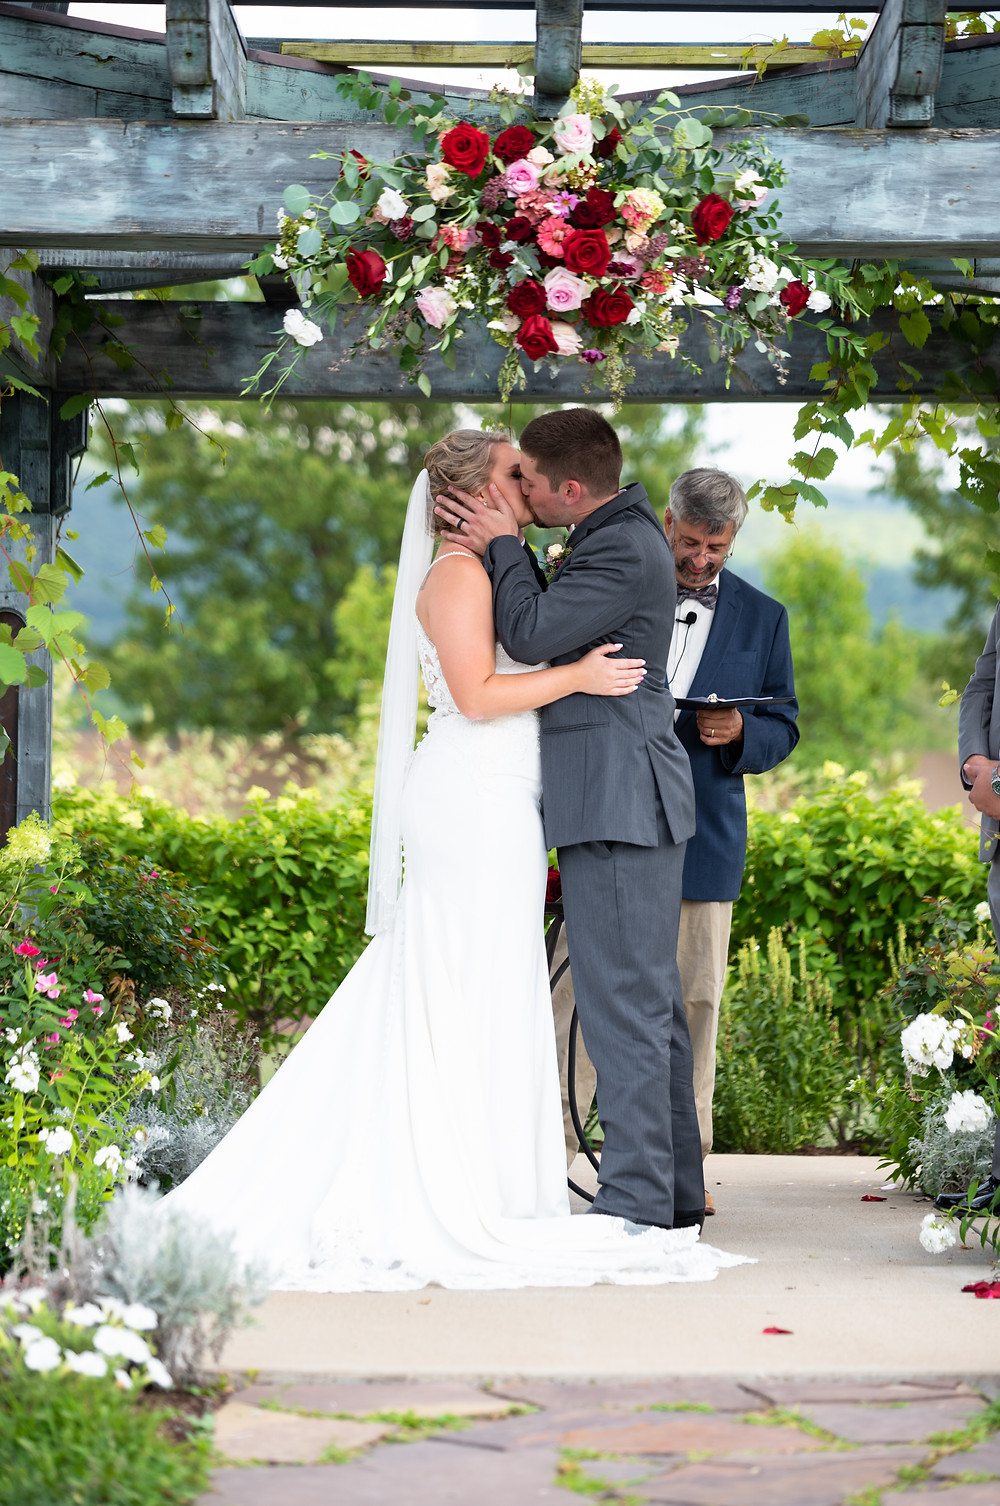 Bride and groom kissing after wedding ceremony under pergola covered in flowers